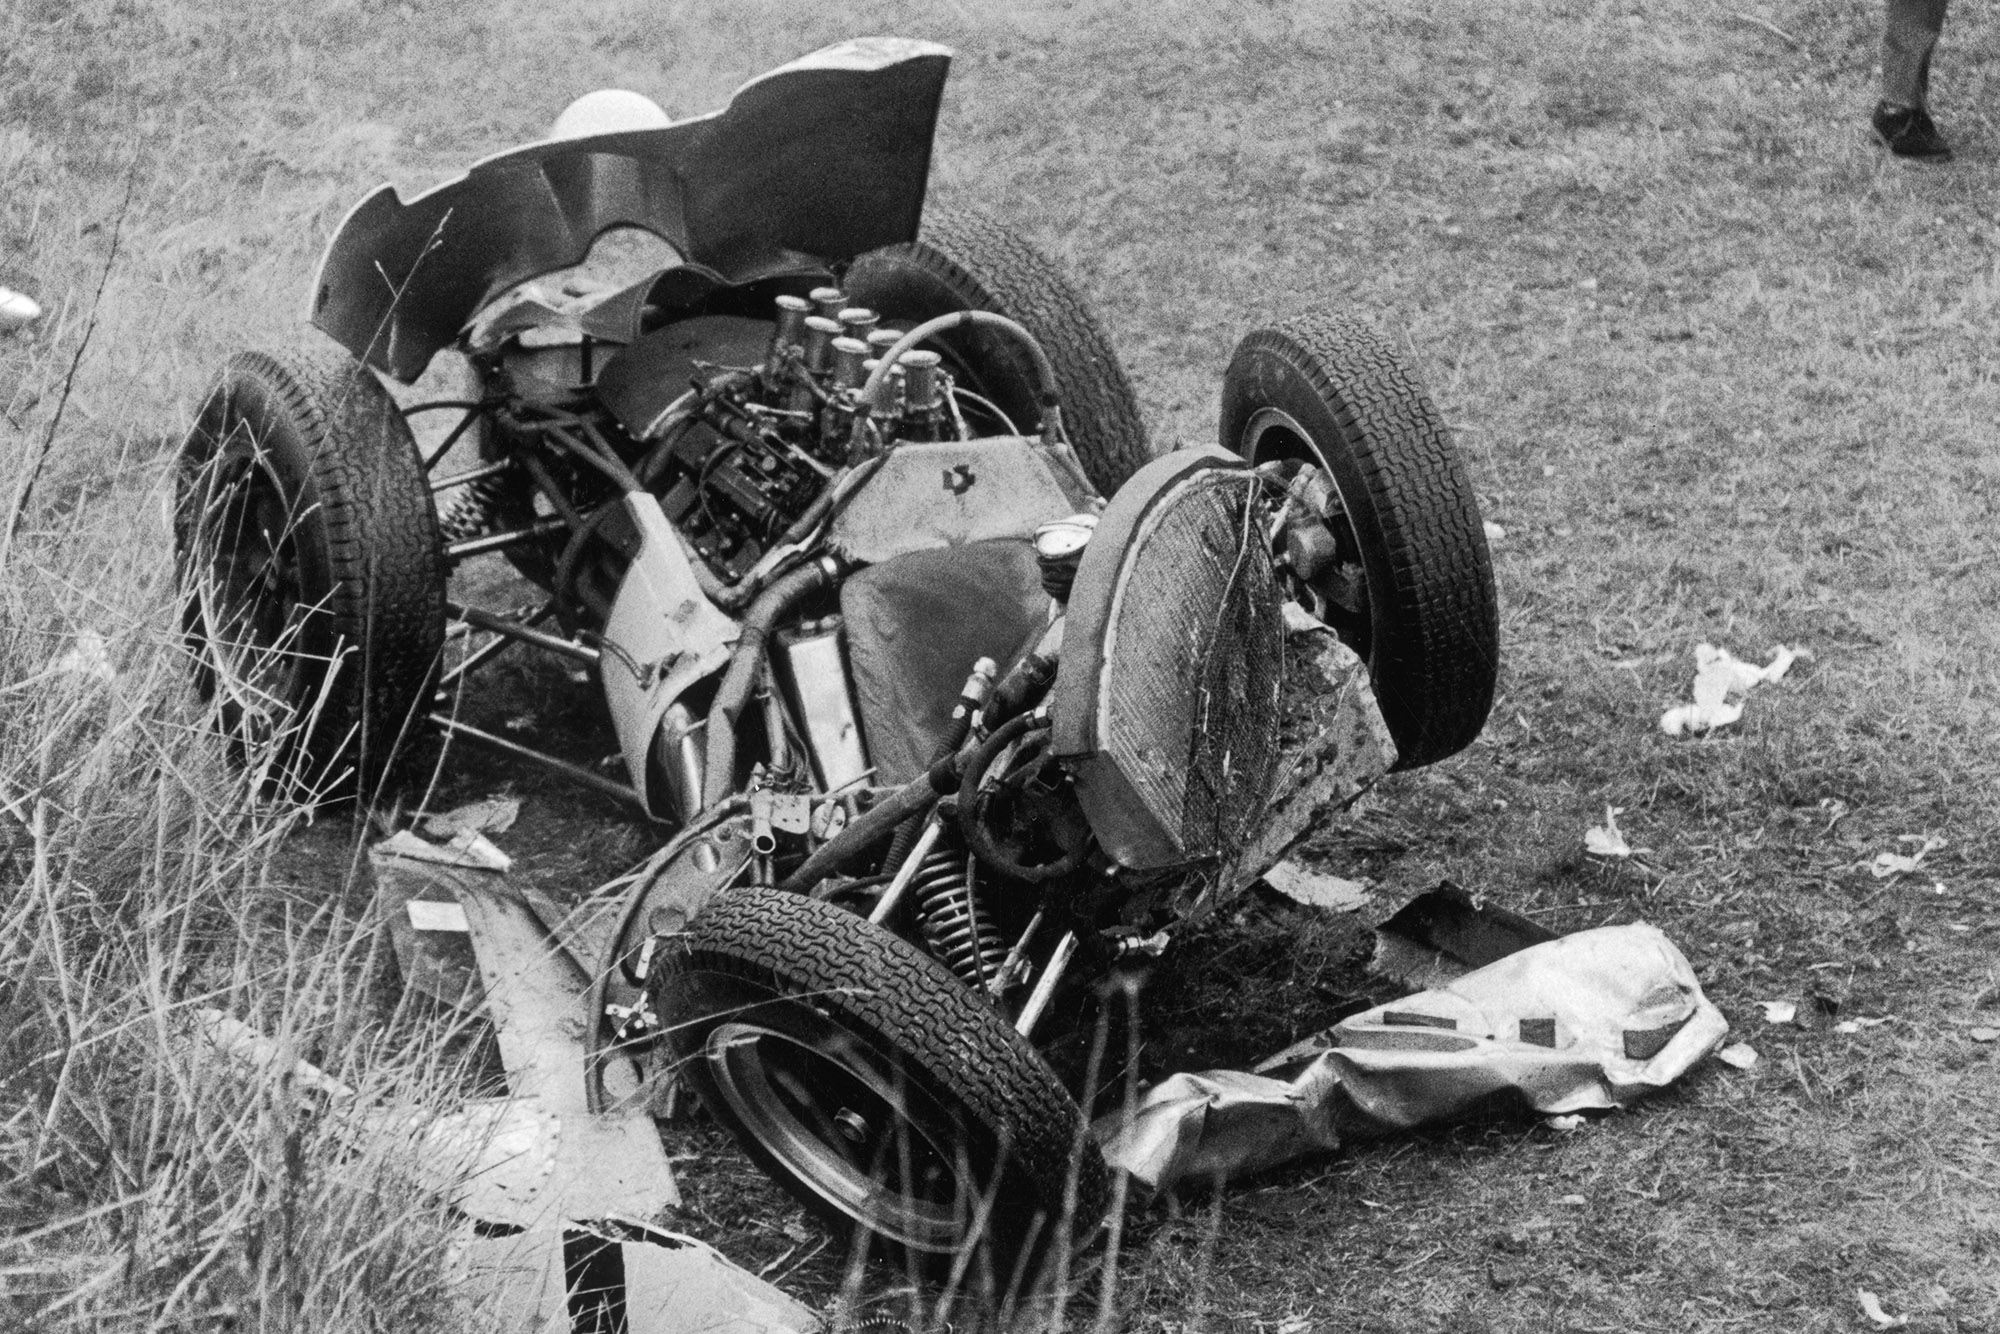 The remains of Stirling Moss's Lotus CLimax V8 after his 1962 Goodwood crash